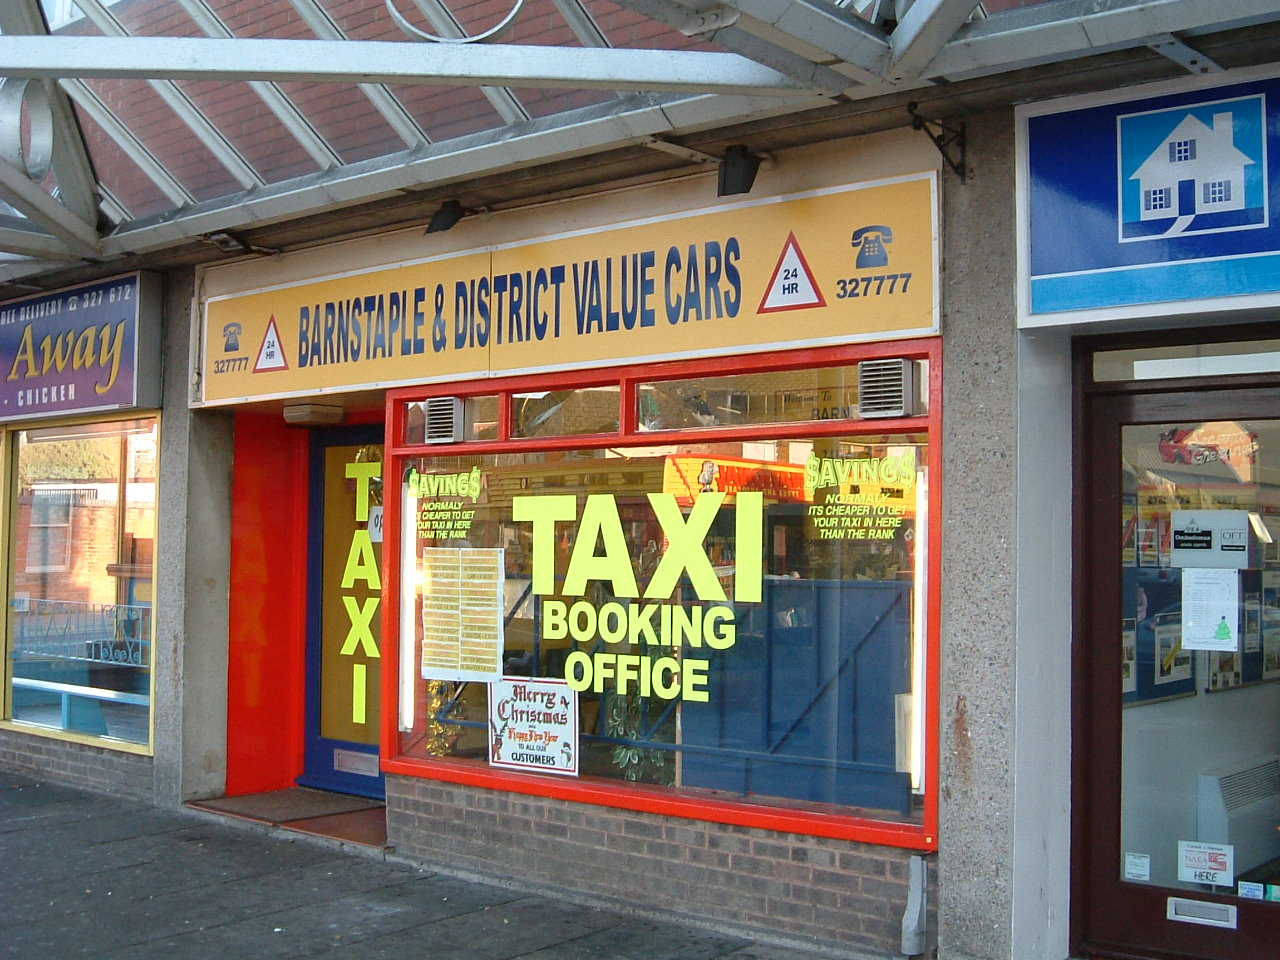 Barnstaple & District Value Taxis Office